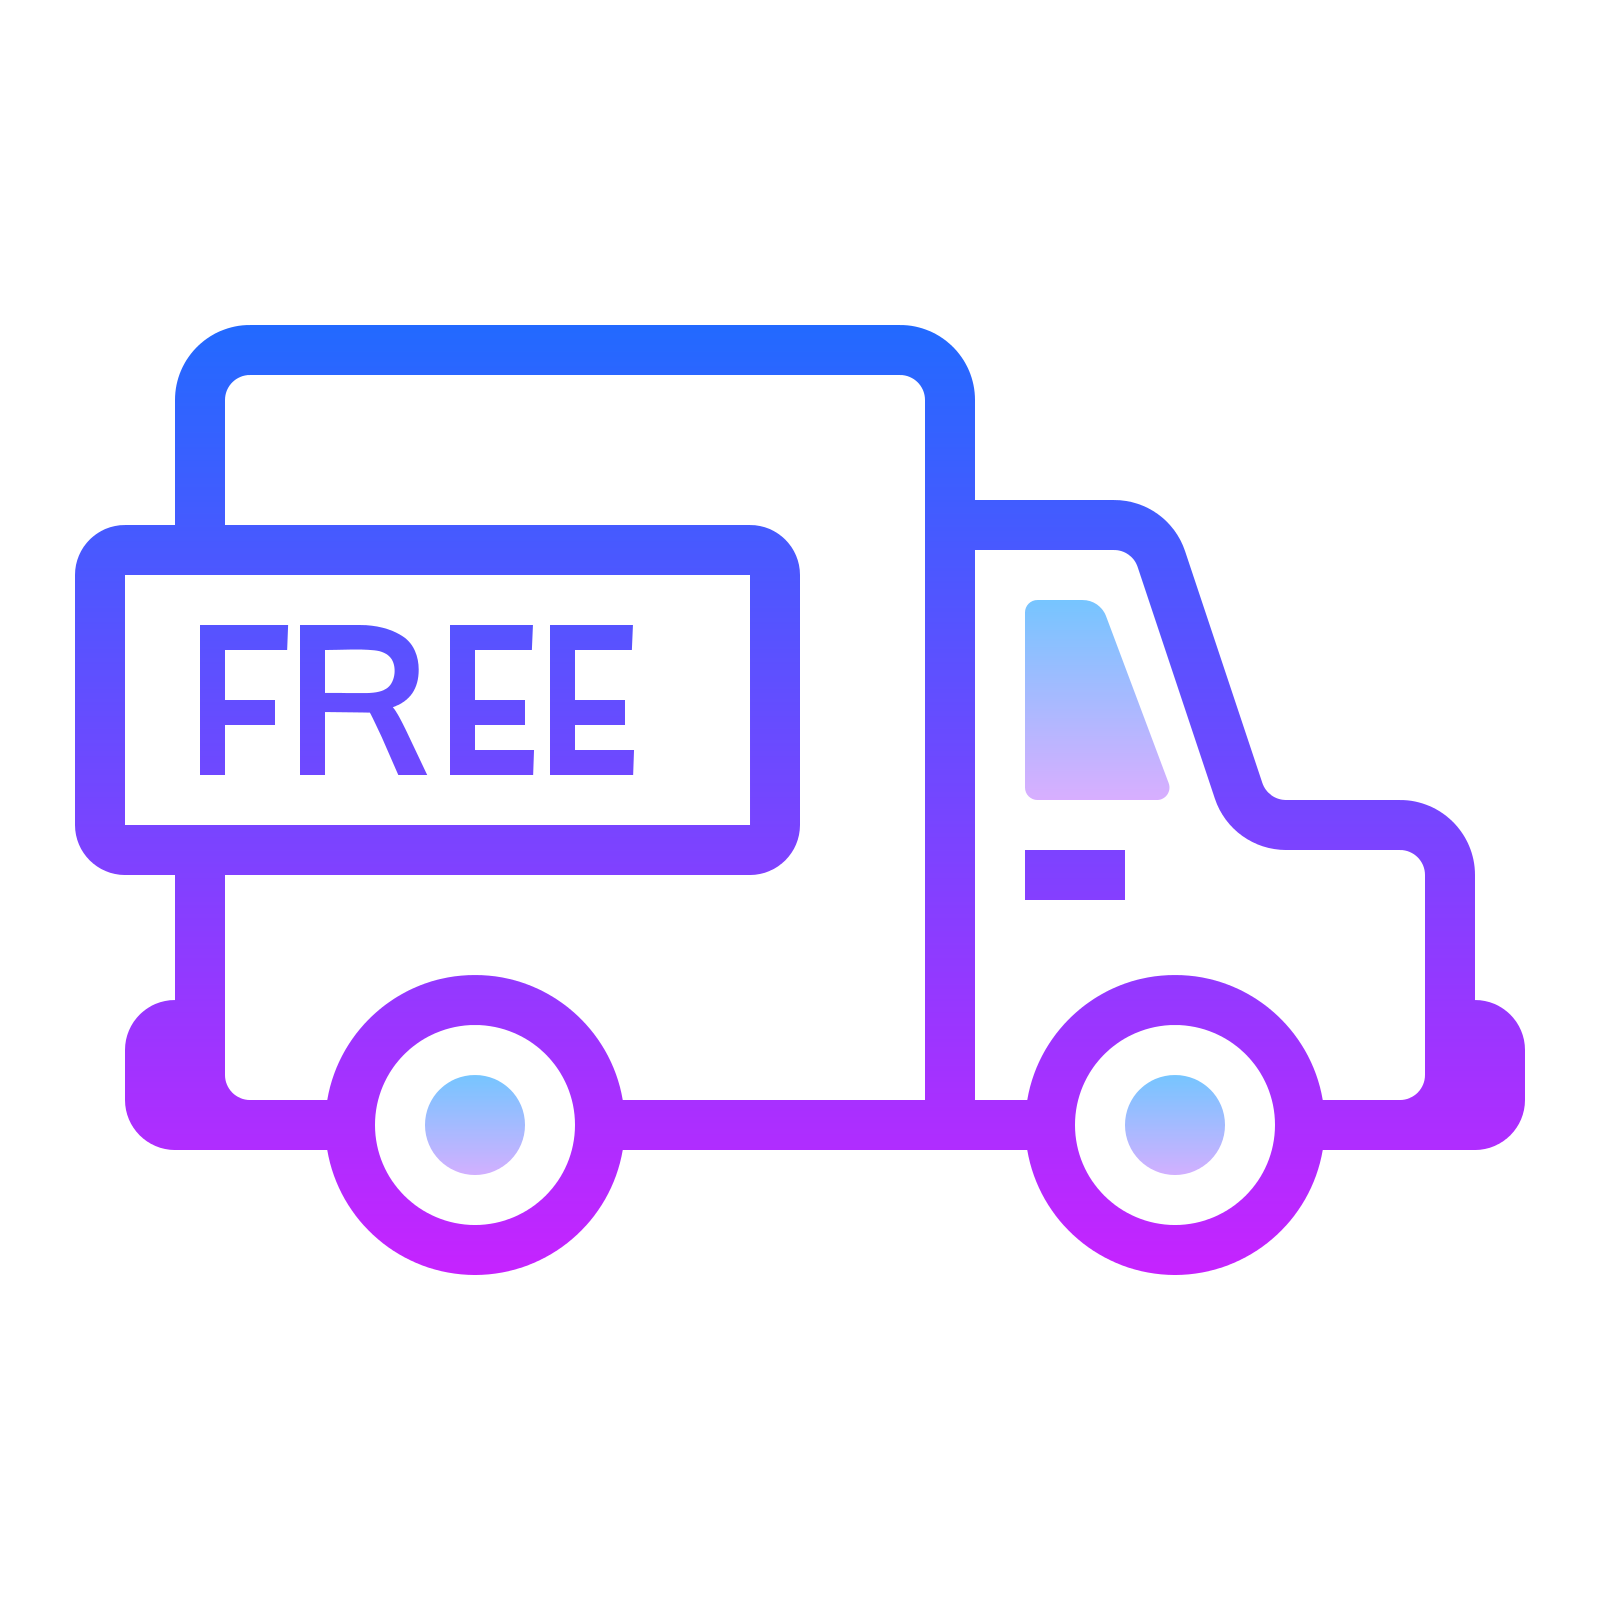 Free shipping png. Icon vaultrunner freeshippingpngfreeshippingicon